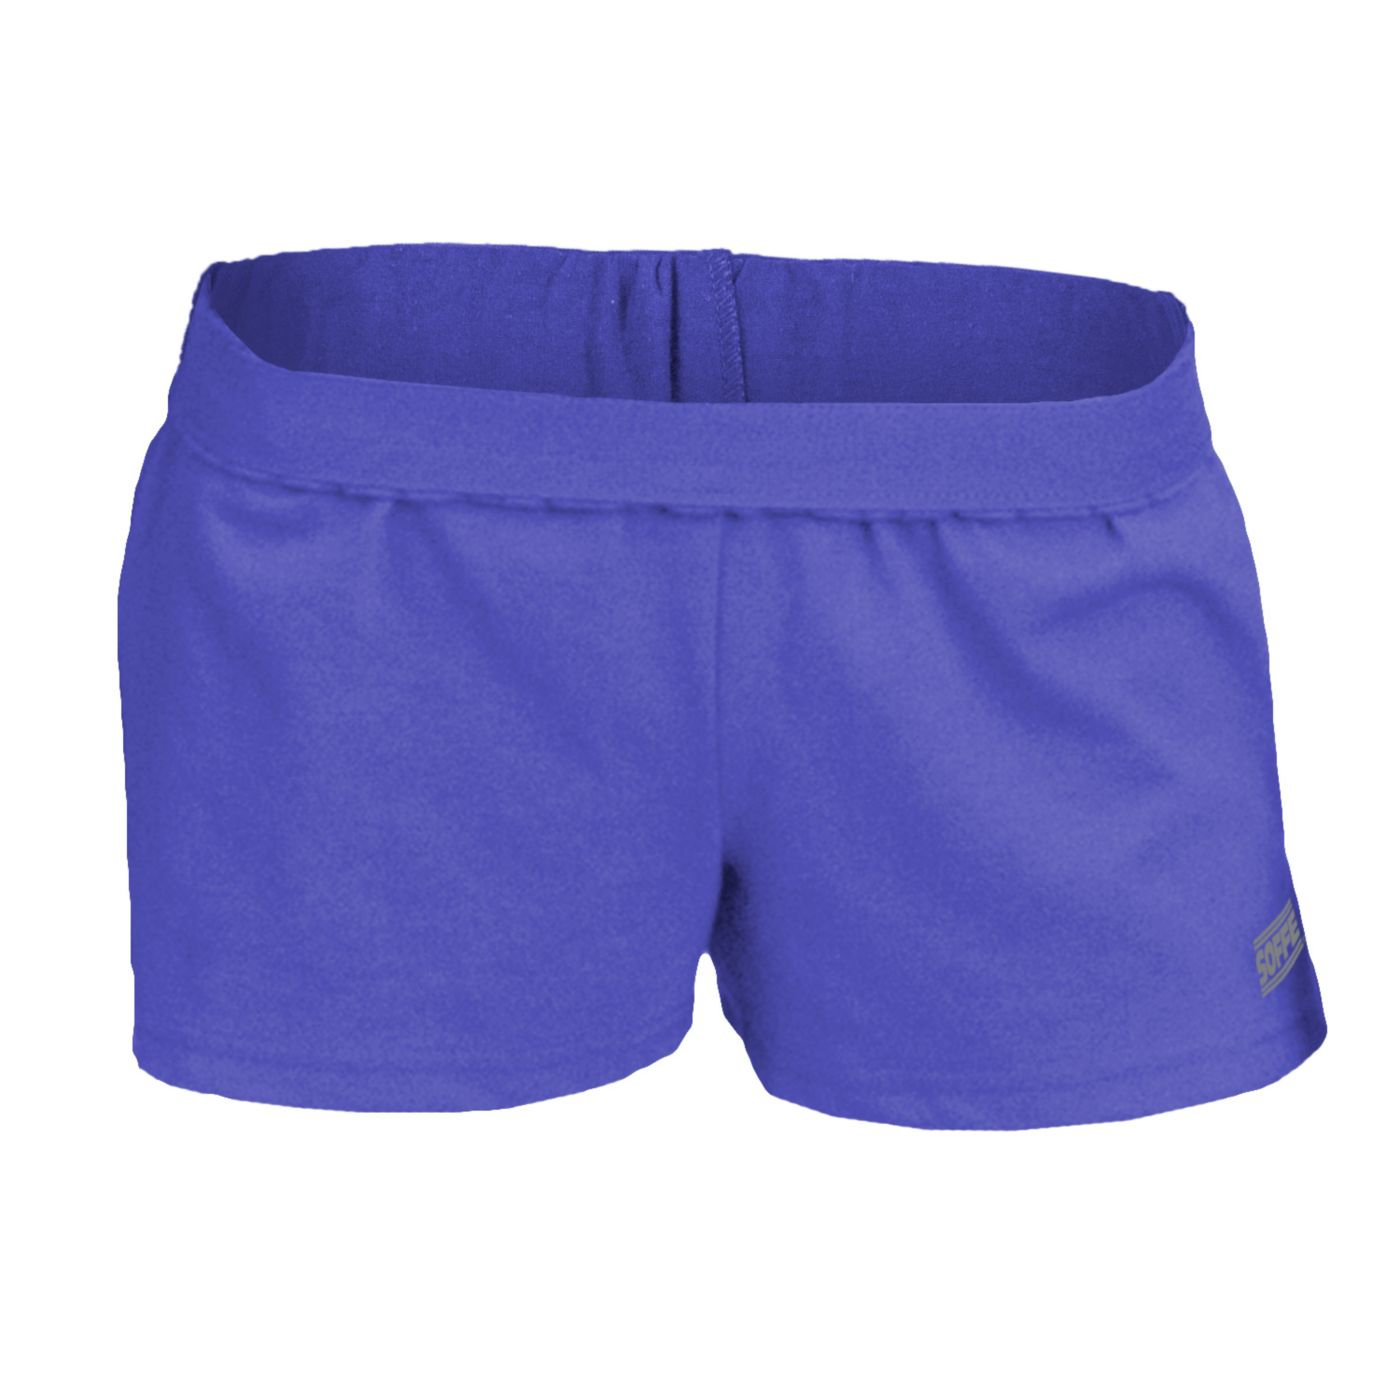 Soffe Women's New Soffe Shorts